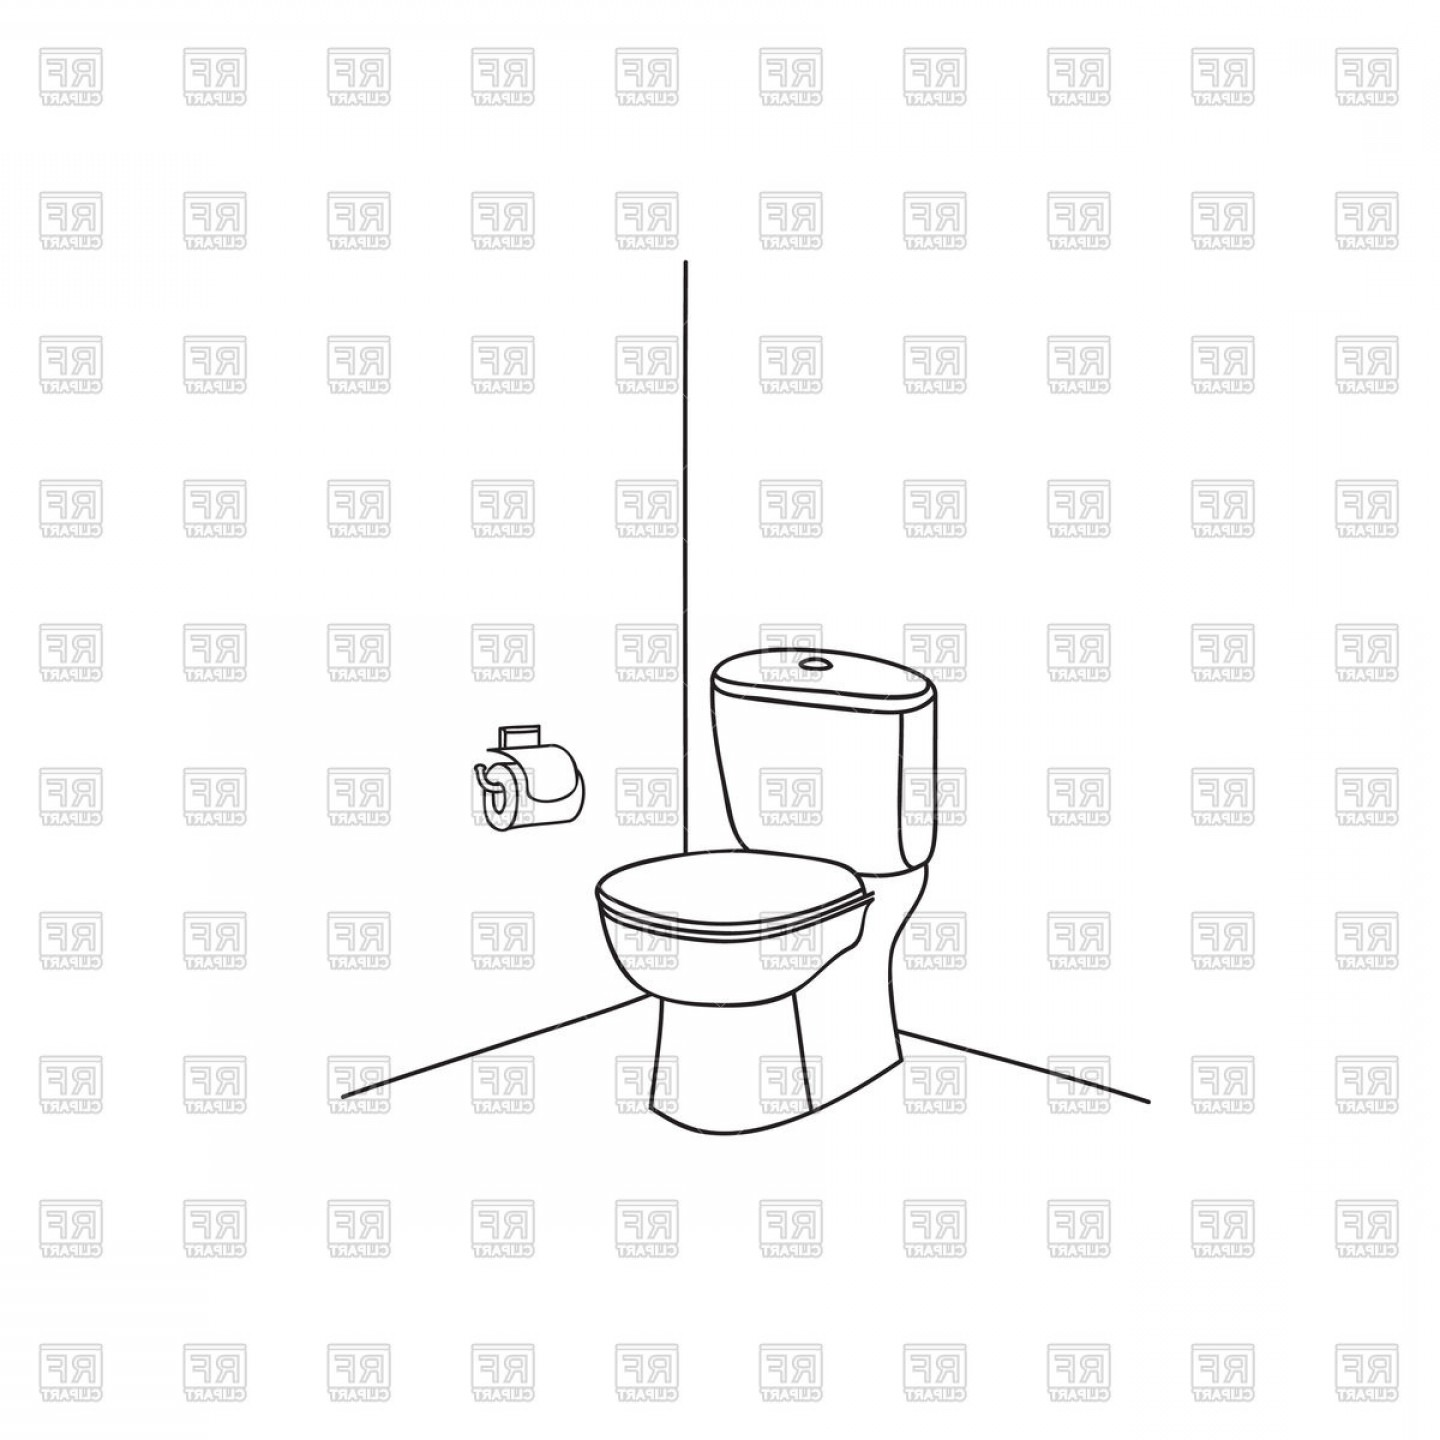 Toilet Paper Vector: Toilet Room Furniture With Toilet Bowl And Toilet Paper Vector Clipart